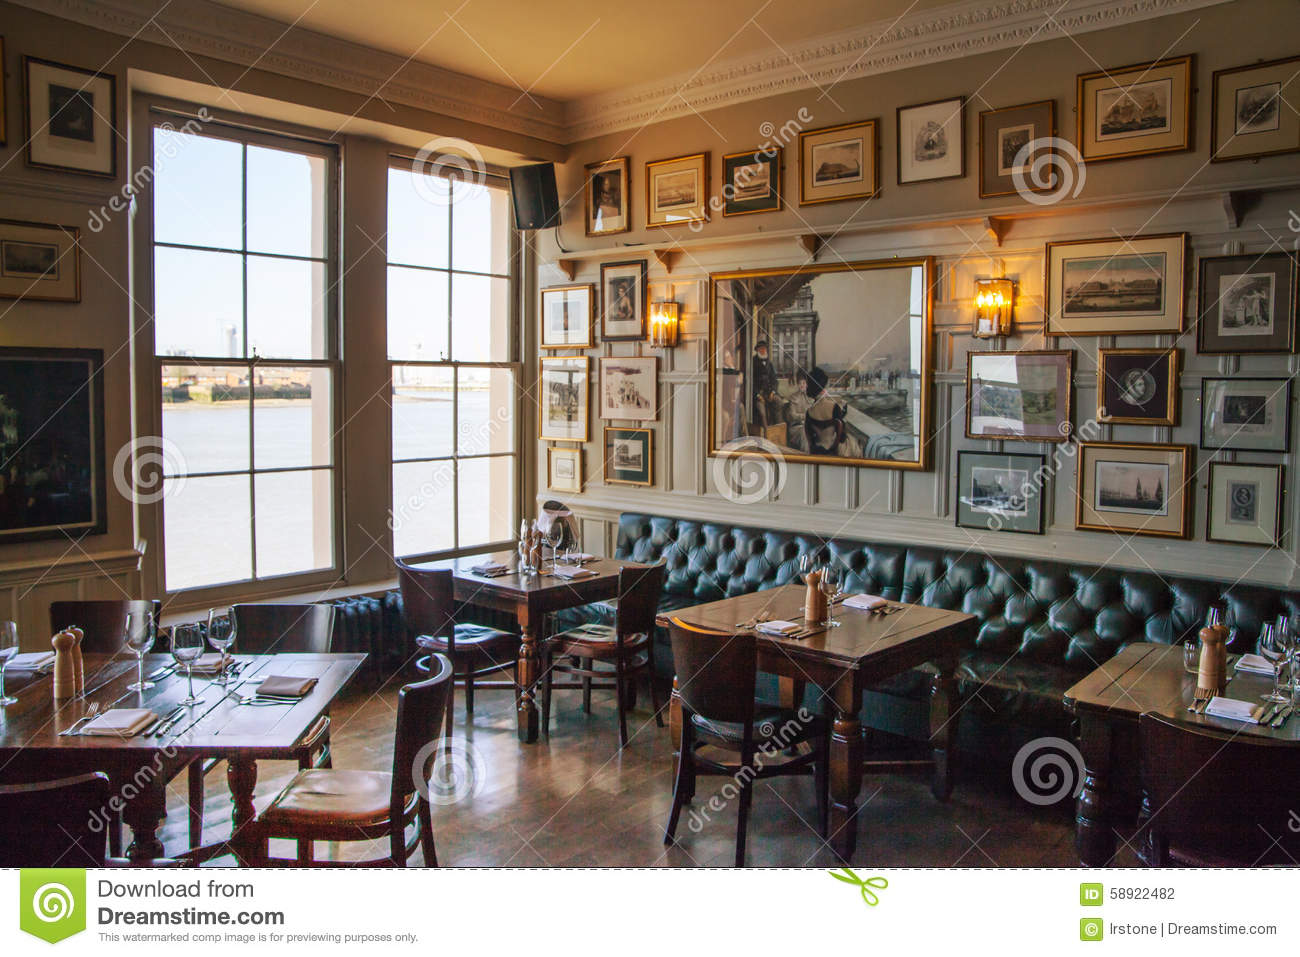 Old english victorian public house interior editorial for Interieur english